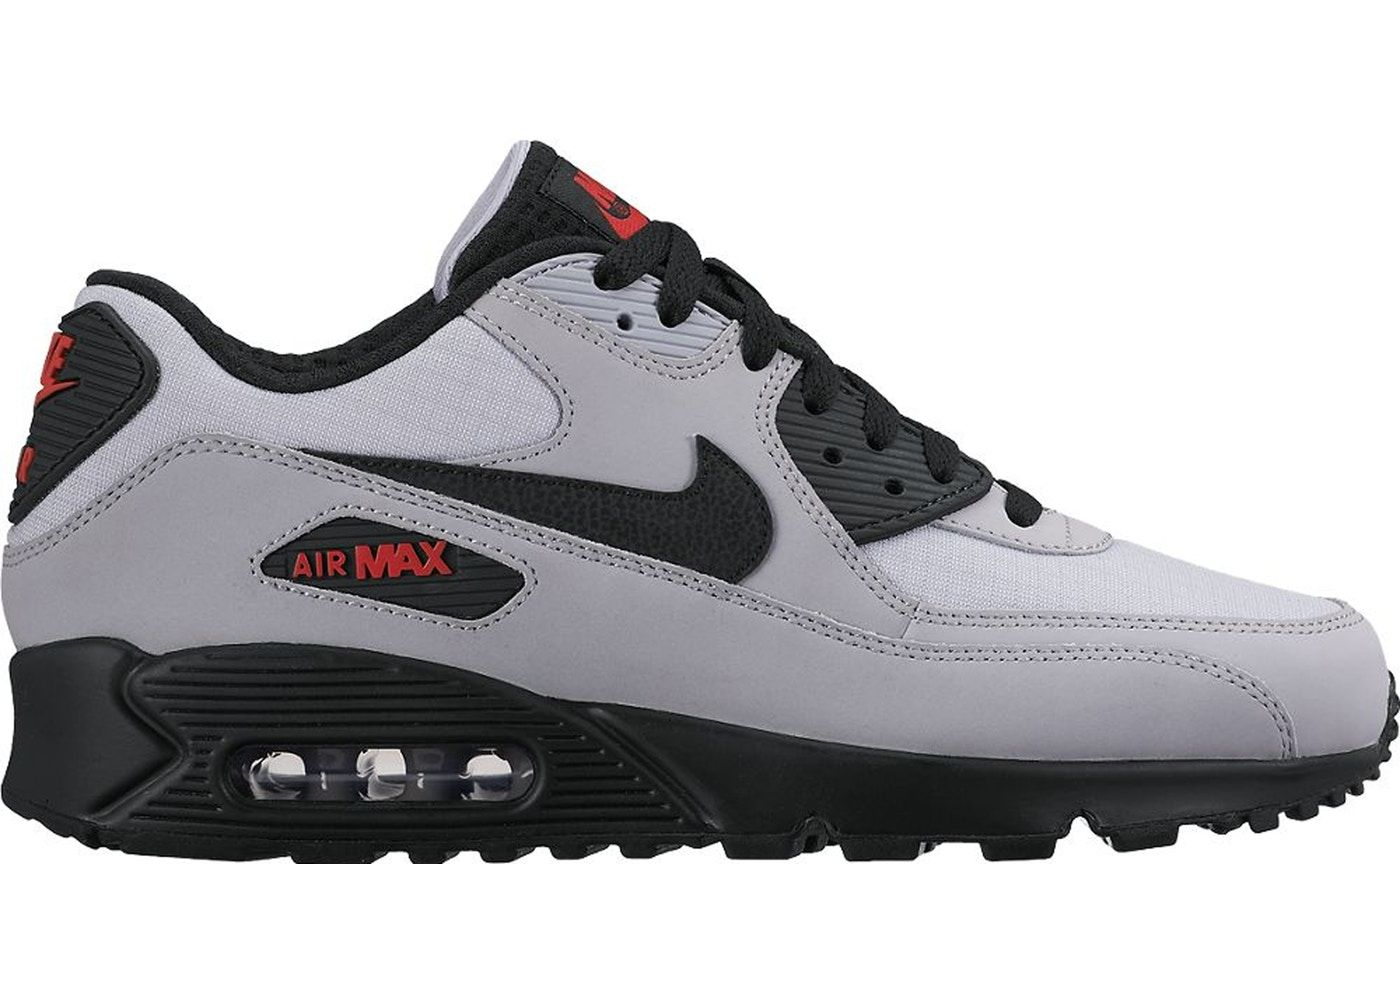 Check Out The Air Max 90 Wolf Grey Black Red Available On Stockx